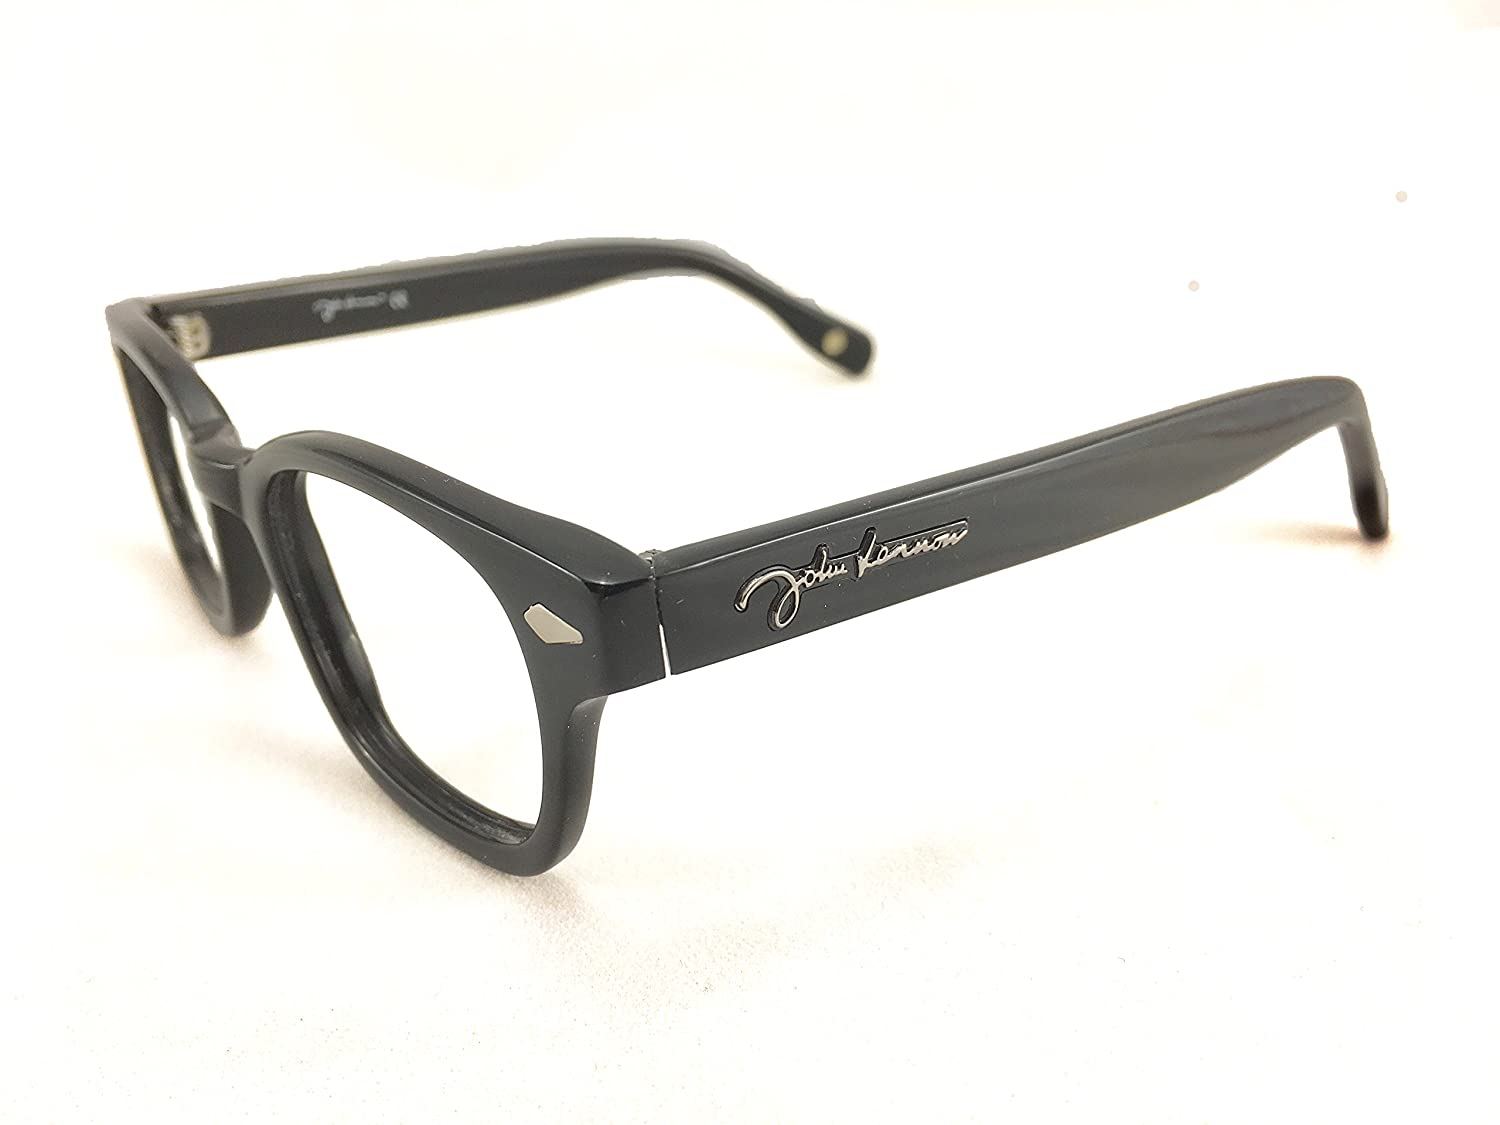 7868ad2b08 Amazon.com  John Lennon JL09 Eyeglass Frame - Black  Clothing